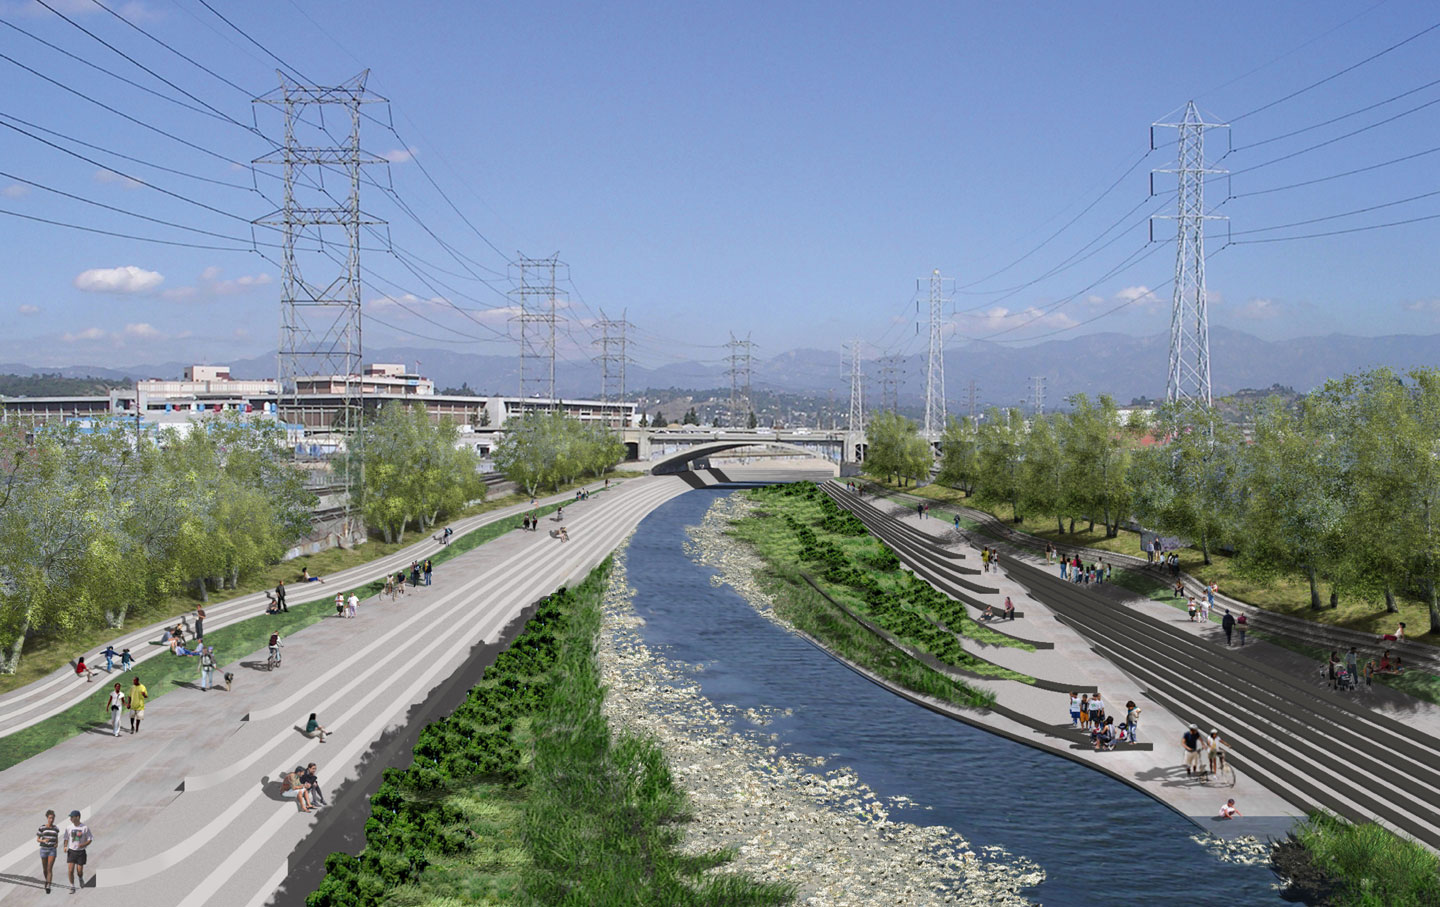 Gehry is currently working on a masterplan for the L.A. River — a concrete channel which flows through L.A. County. Speculation is it will take longer than Disney Concert Hall to get the approvals, cooperation, and funding needed.